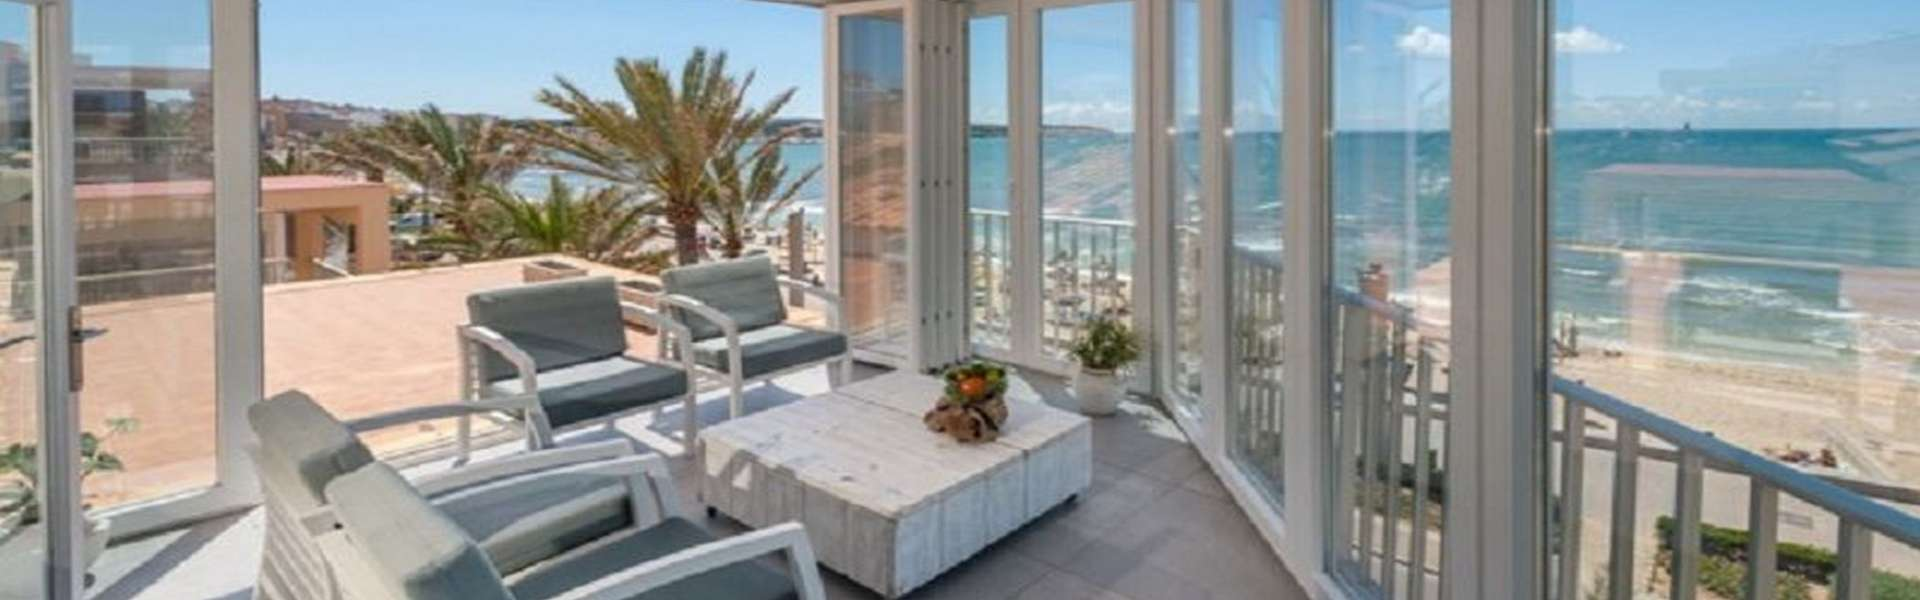 Palma - Luxury apartment in first sea line